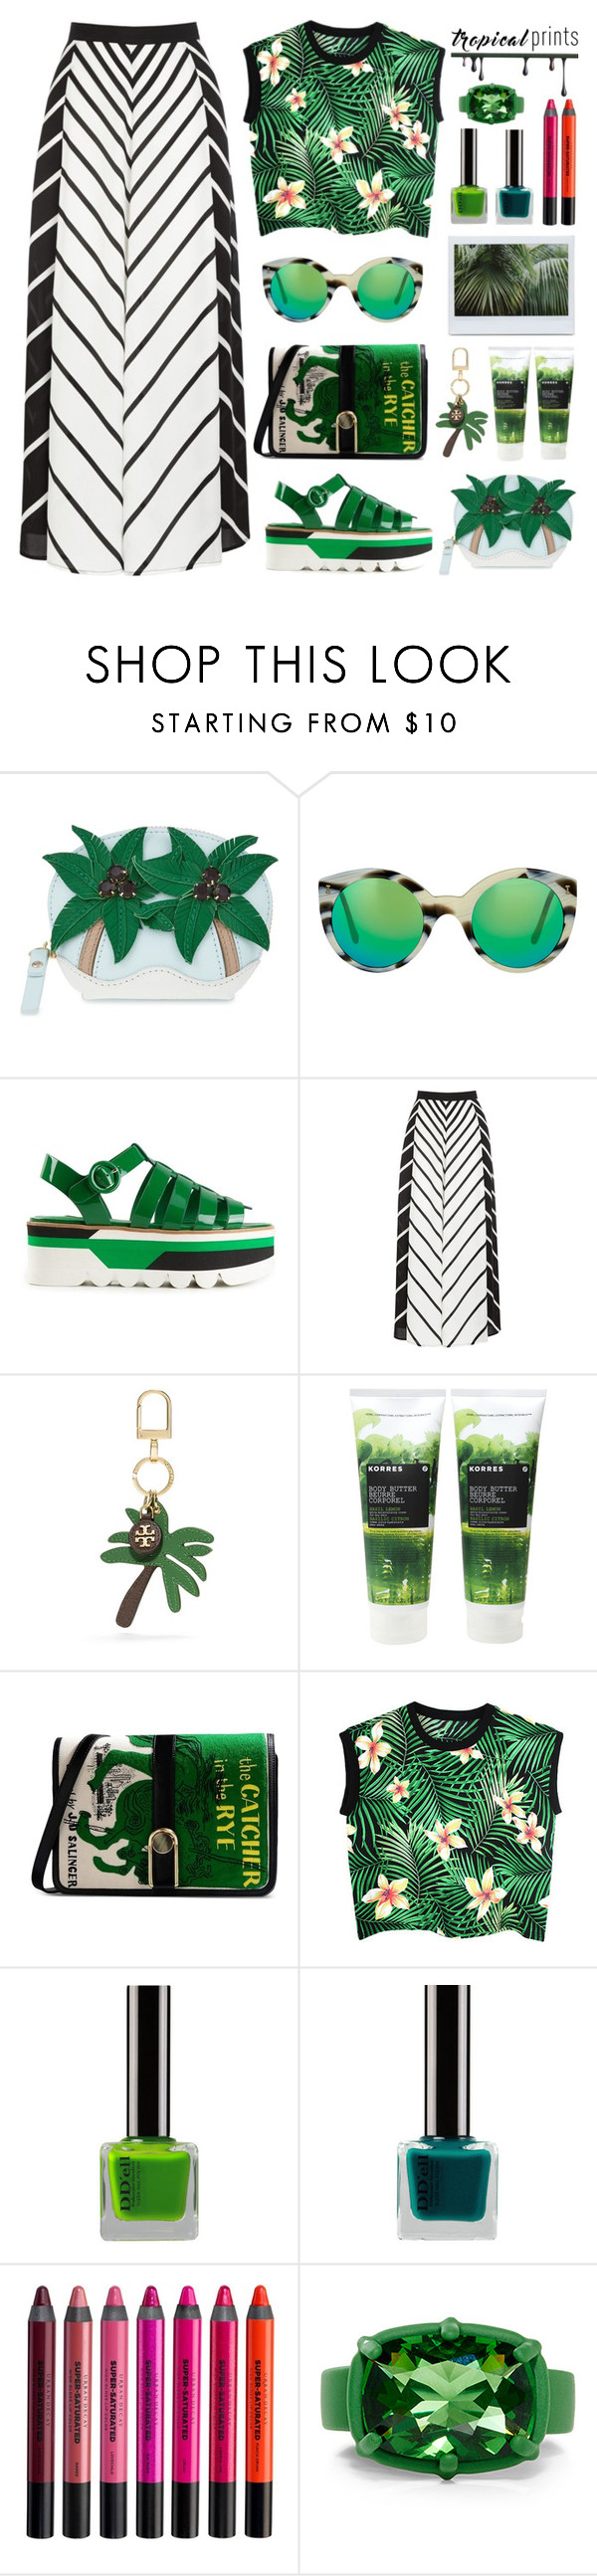 """""""In Tropical Mood"""" by stavrolga on Polyvore featuring Kate Spade, Illesteva, Dolce&Gabbana, Warehouse, Tory Burch, Korres, Olympia Le-Tan, Urban Decay, tropicalprints and polyvoreeditorial"""